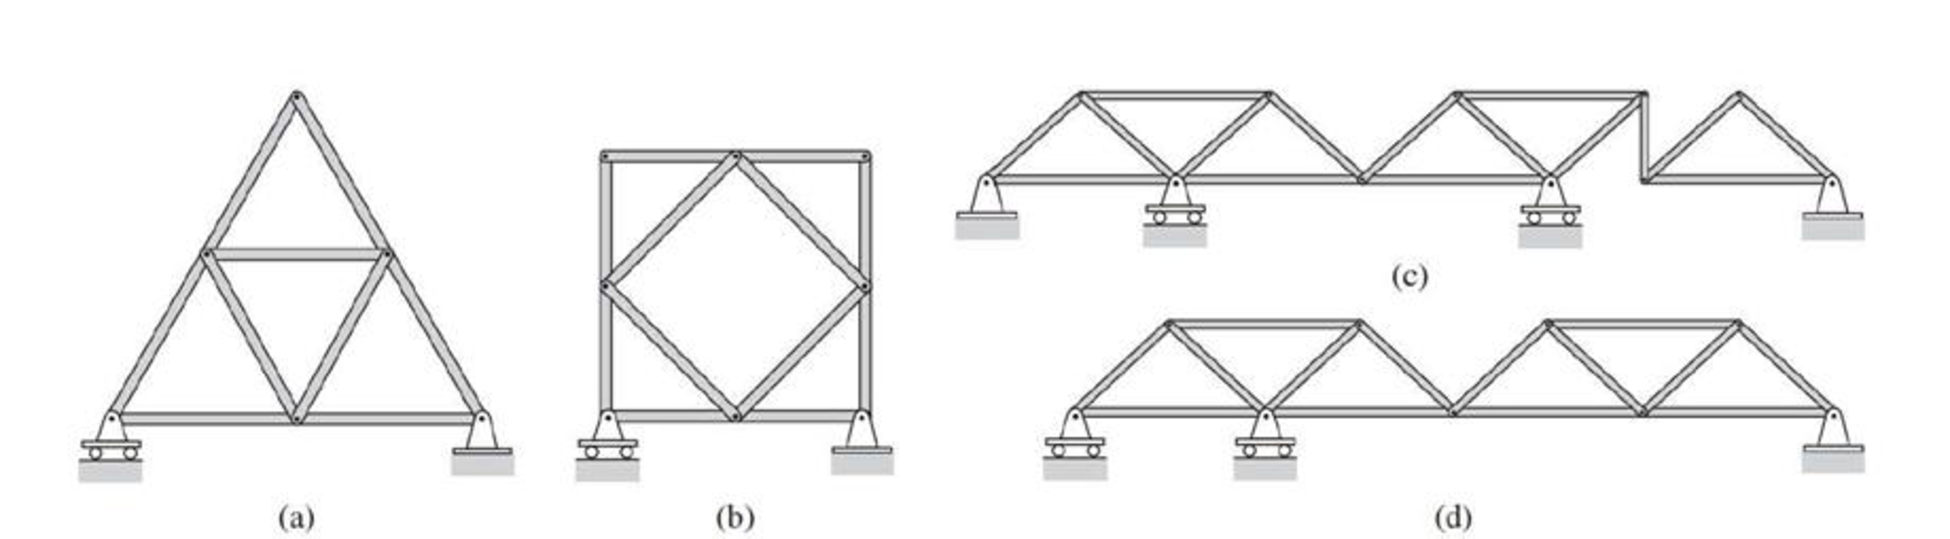 Chapter 4, Problem 5P, Classify each of the plane trusses shown as unstable, statically determine or statically